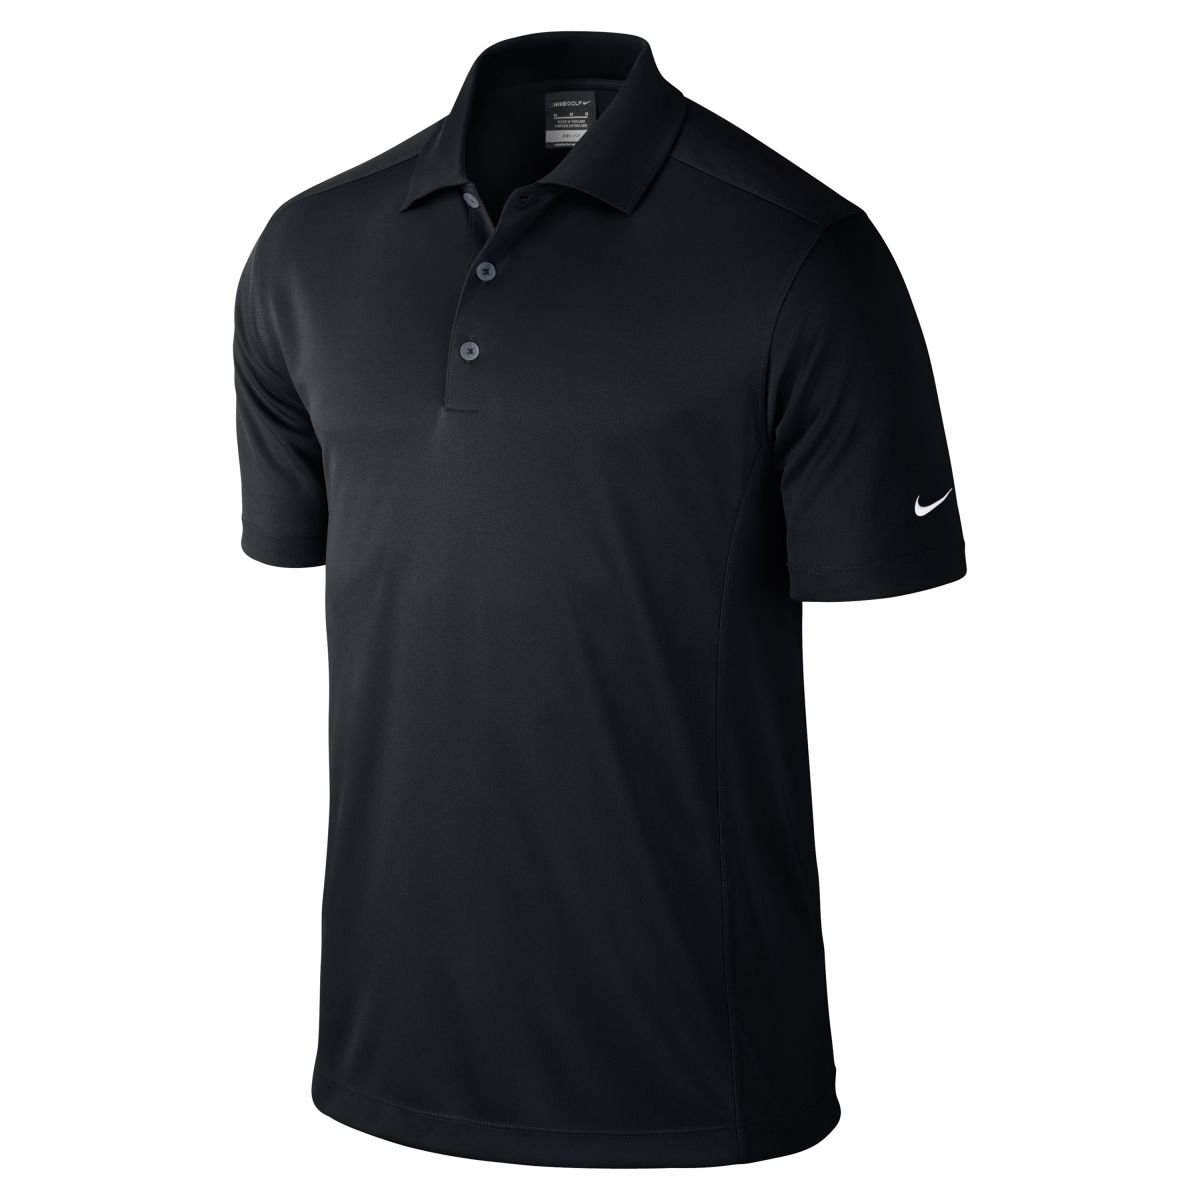 Nike men 39 s dri fit polo shirt nk215 for Black fitted polo shirt